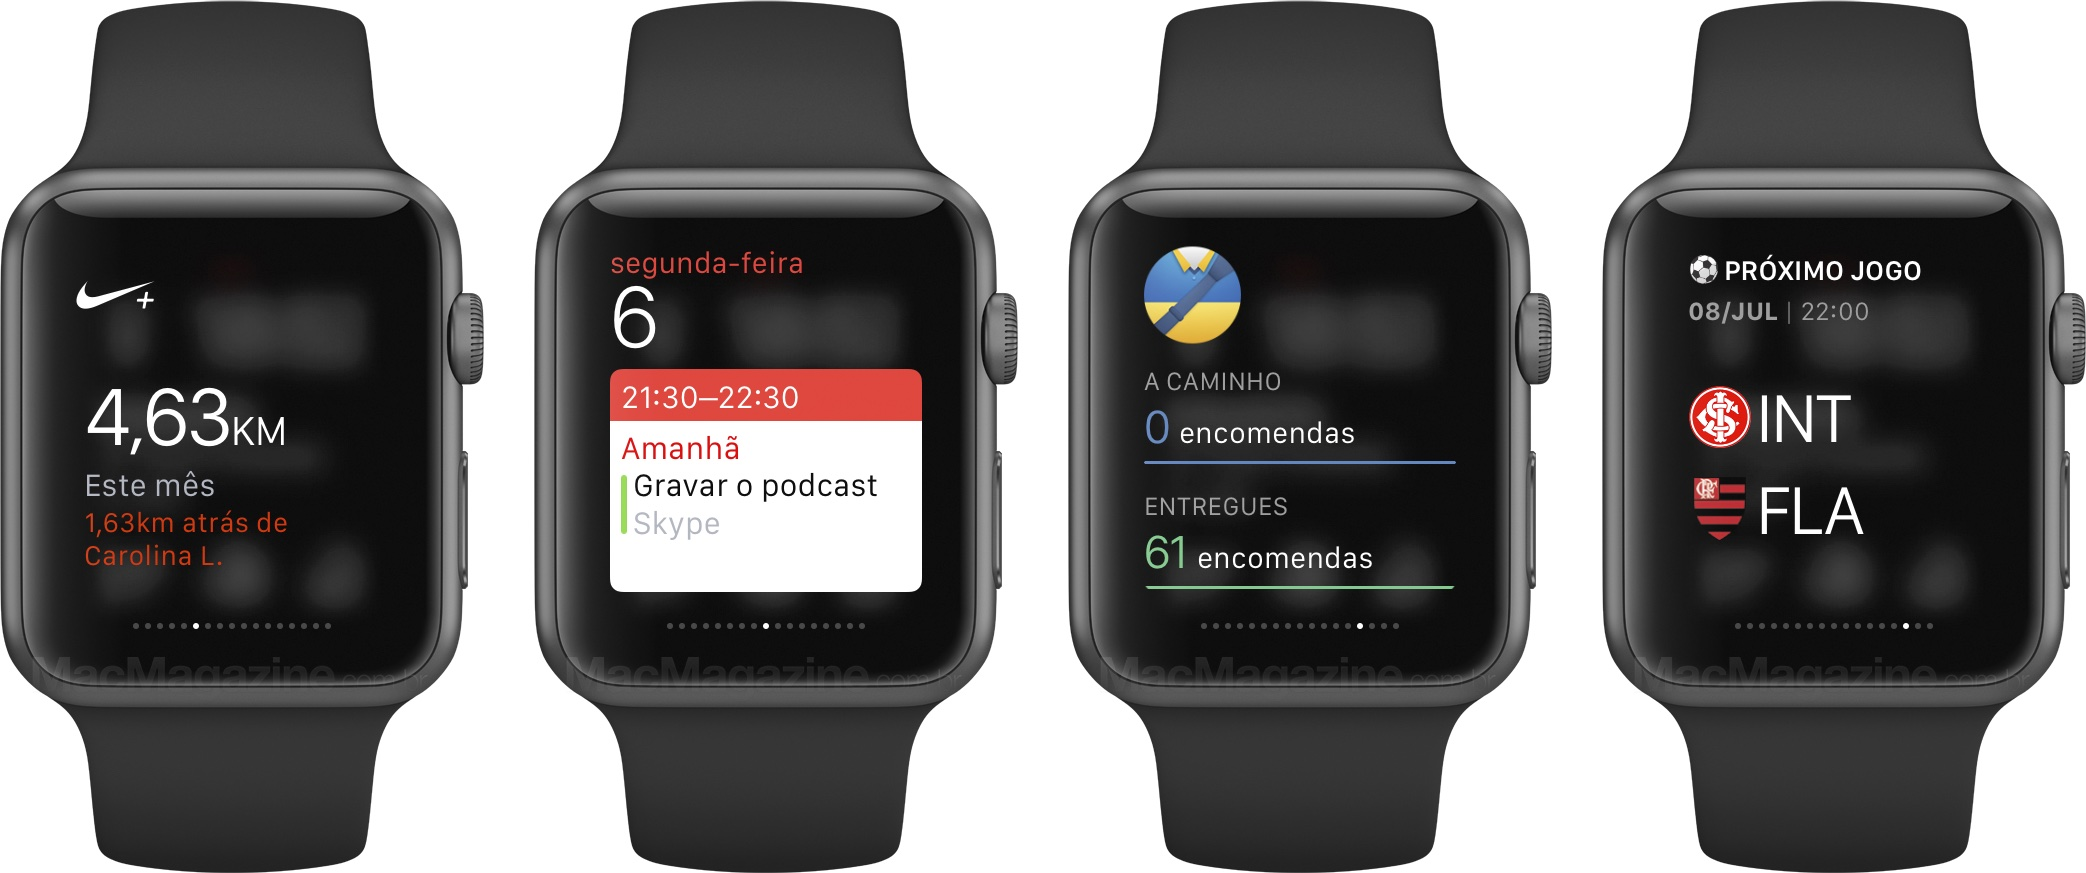 Review do Apple Watch - Resumos